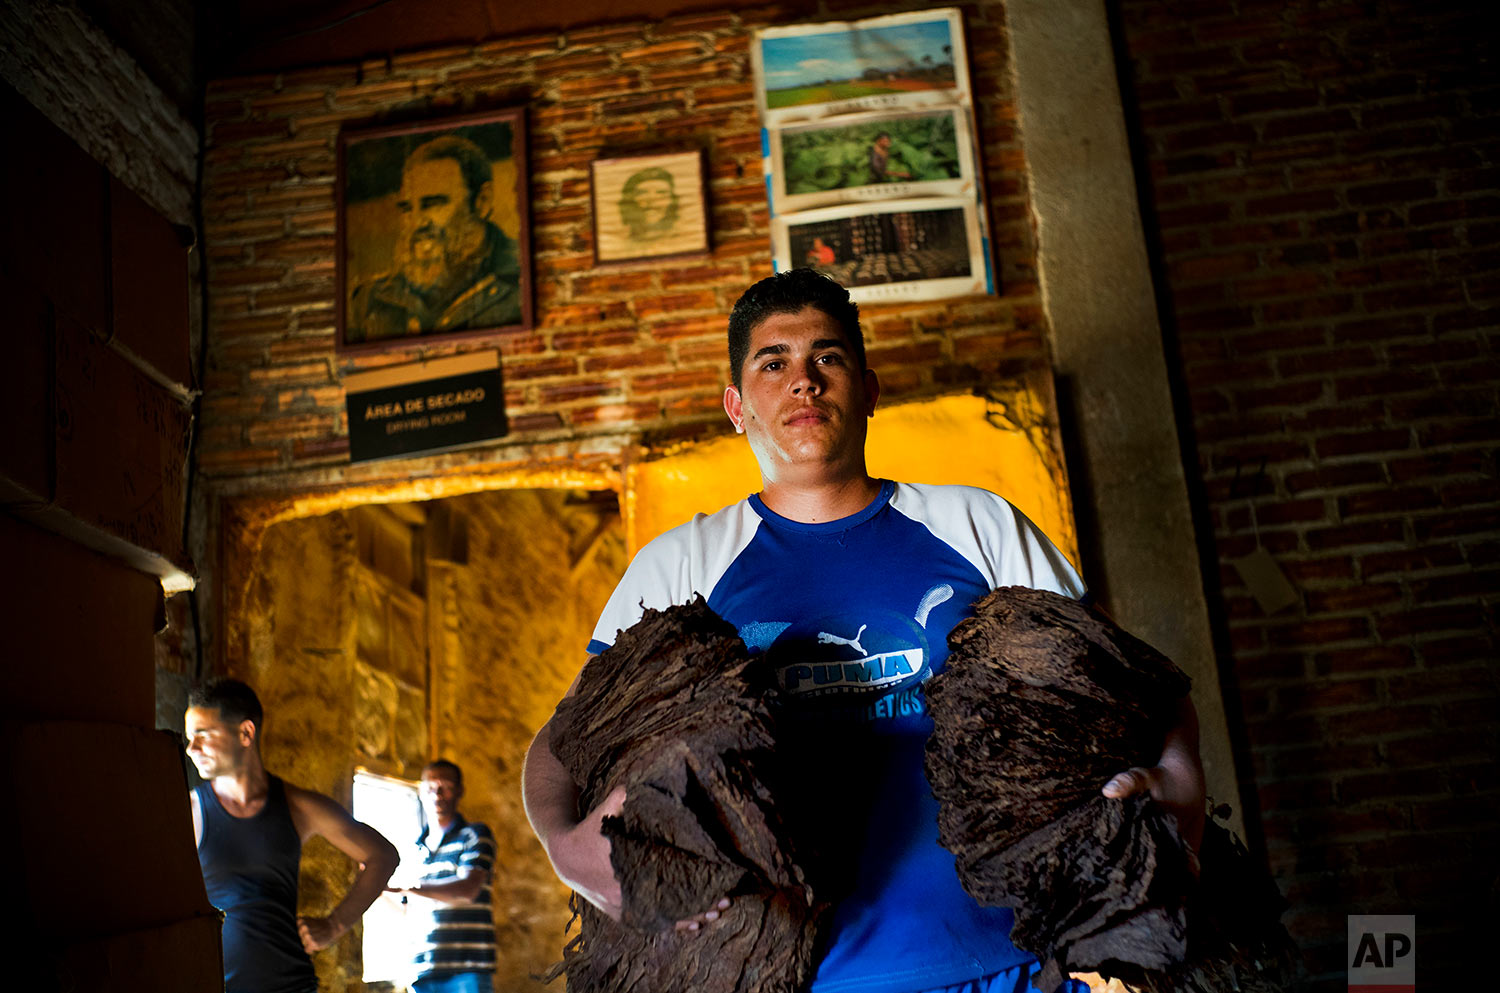 In this Feb. 27, 2018 photo, Luis Miguel Vergara poses in front of a image of late Cuban leader Fidel Castro, with handfuls of fermented tobacco leaves, in preparation for the drying stage, at a state-run warehouse in San Luis, in Cuba's western province of Pinar del Rio. (AP Photo/Ramon Espinosa)